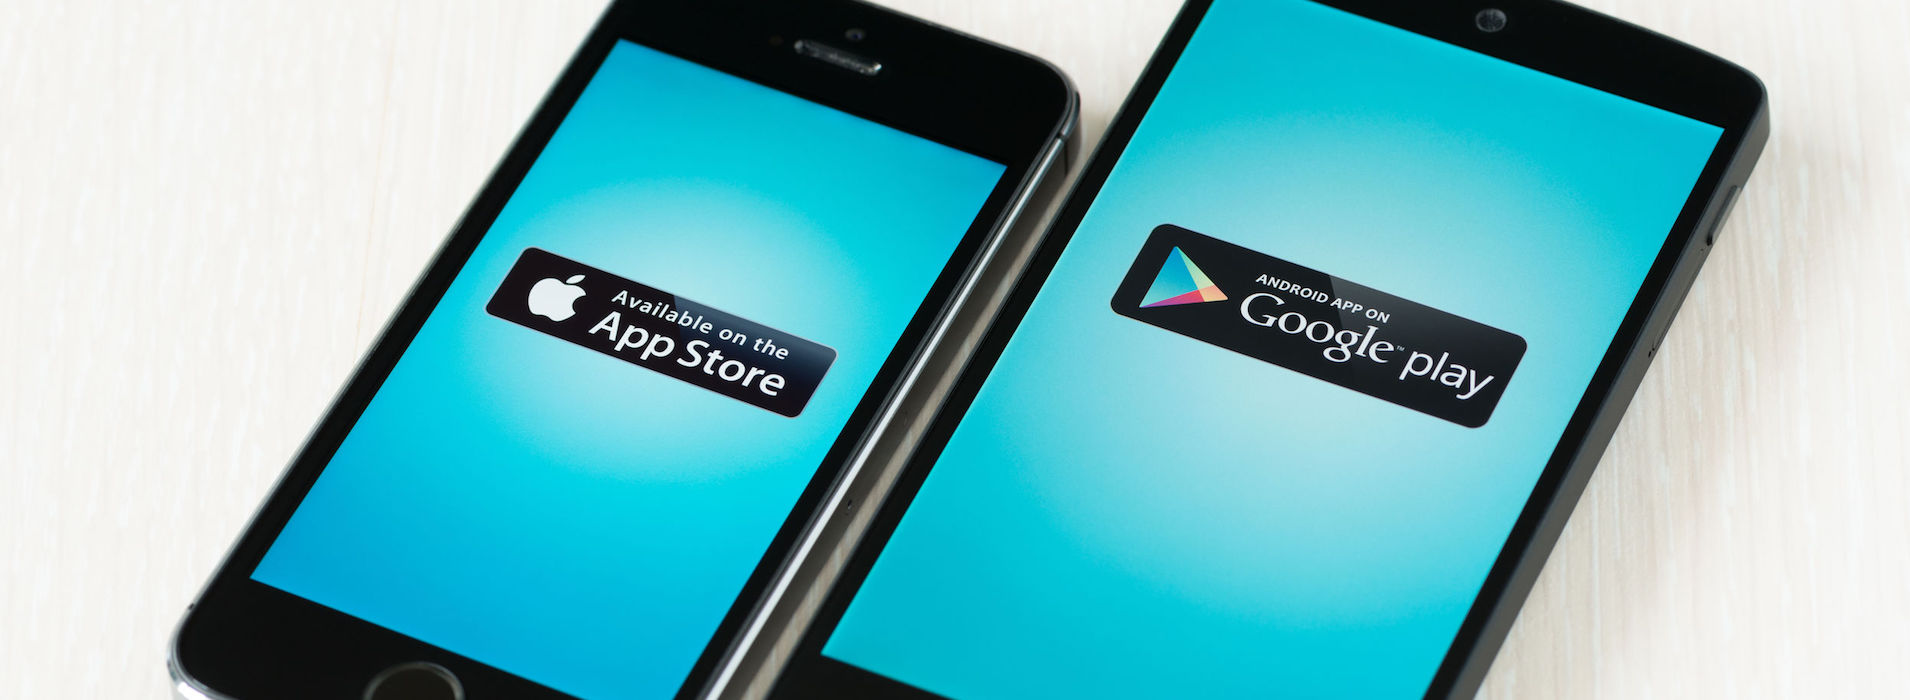 Smartphones - Google Play - App Store Optimierung